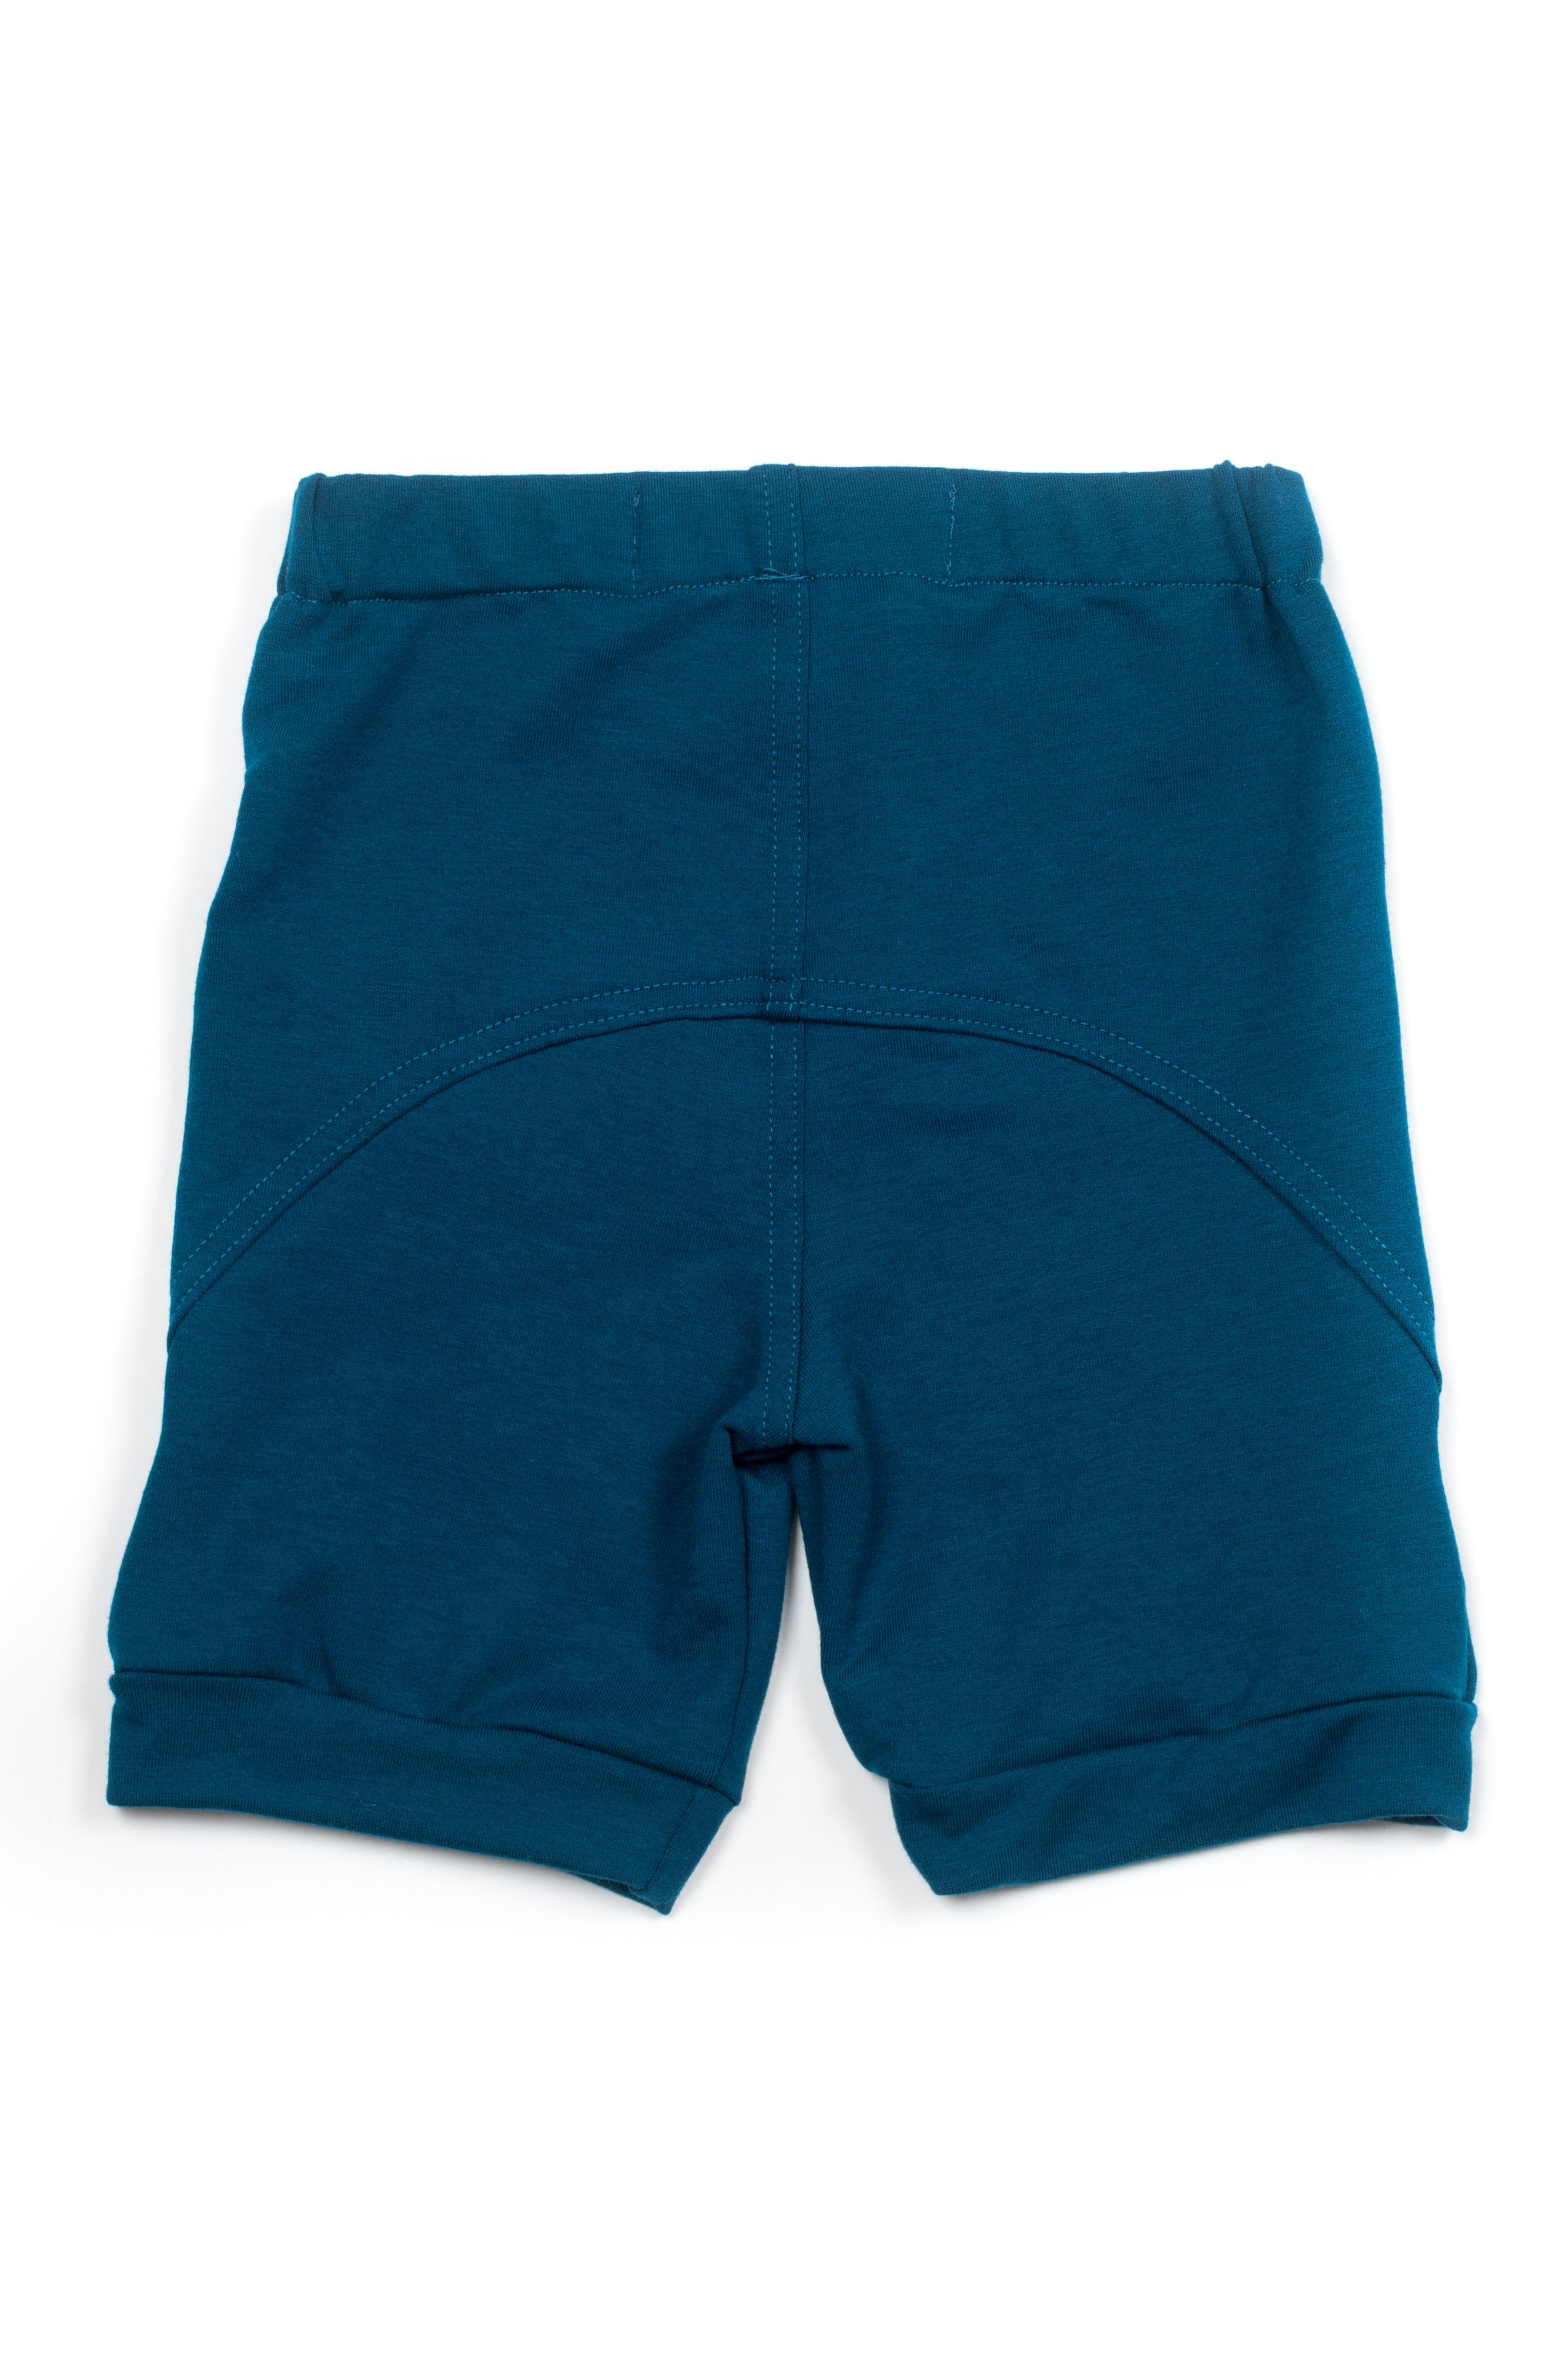 Two-Panel Shorts,                             Alternate thumbnail 2, color,                             Moroccan Blue